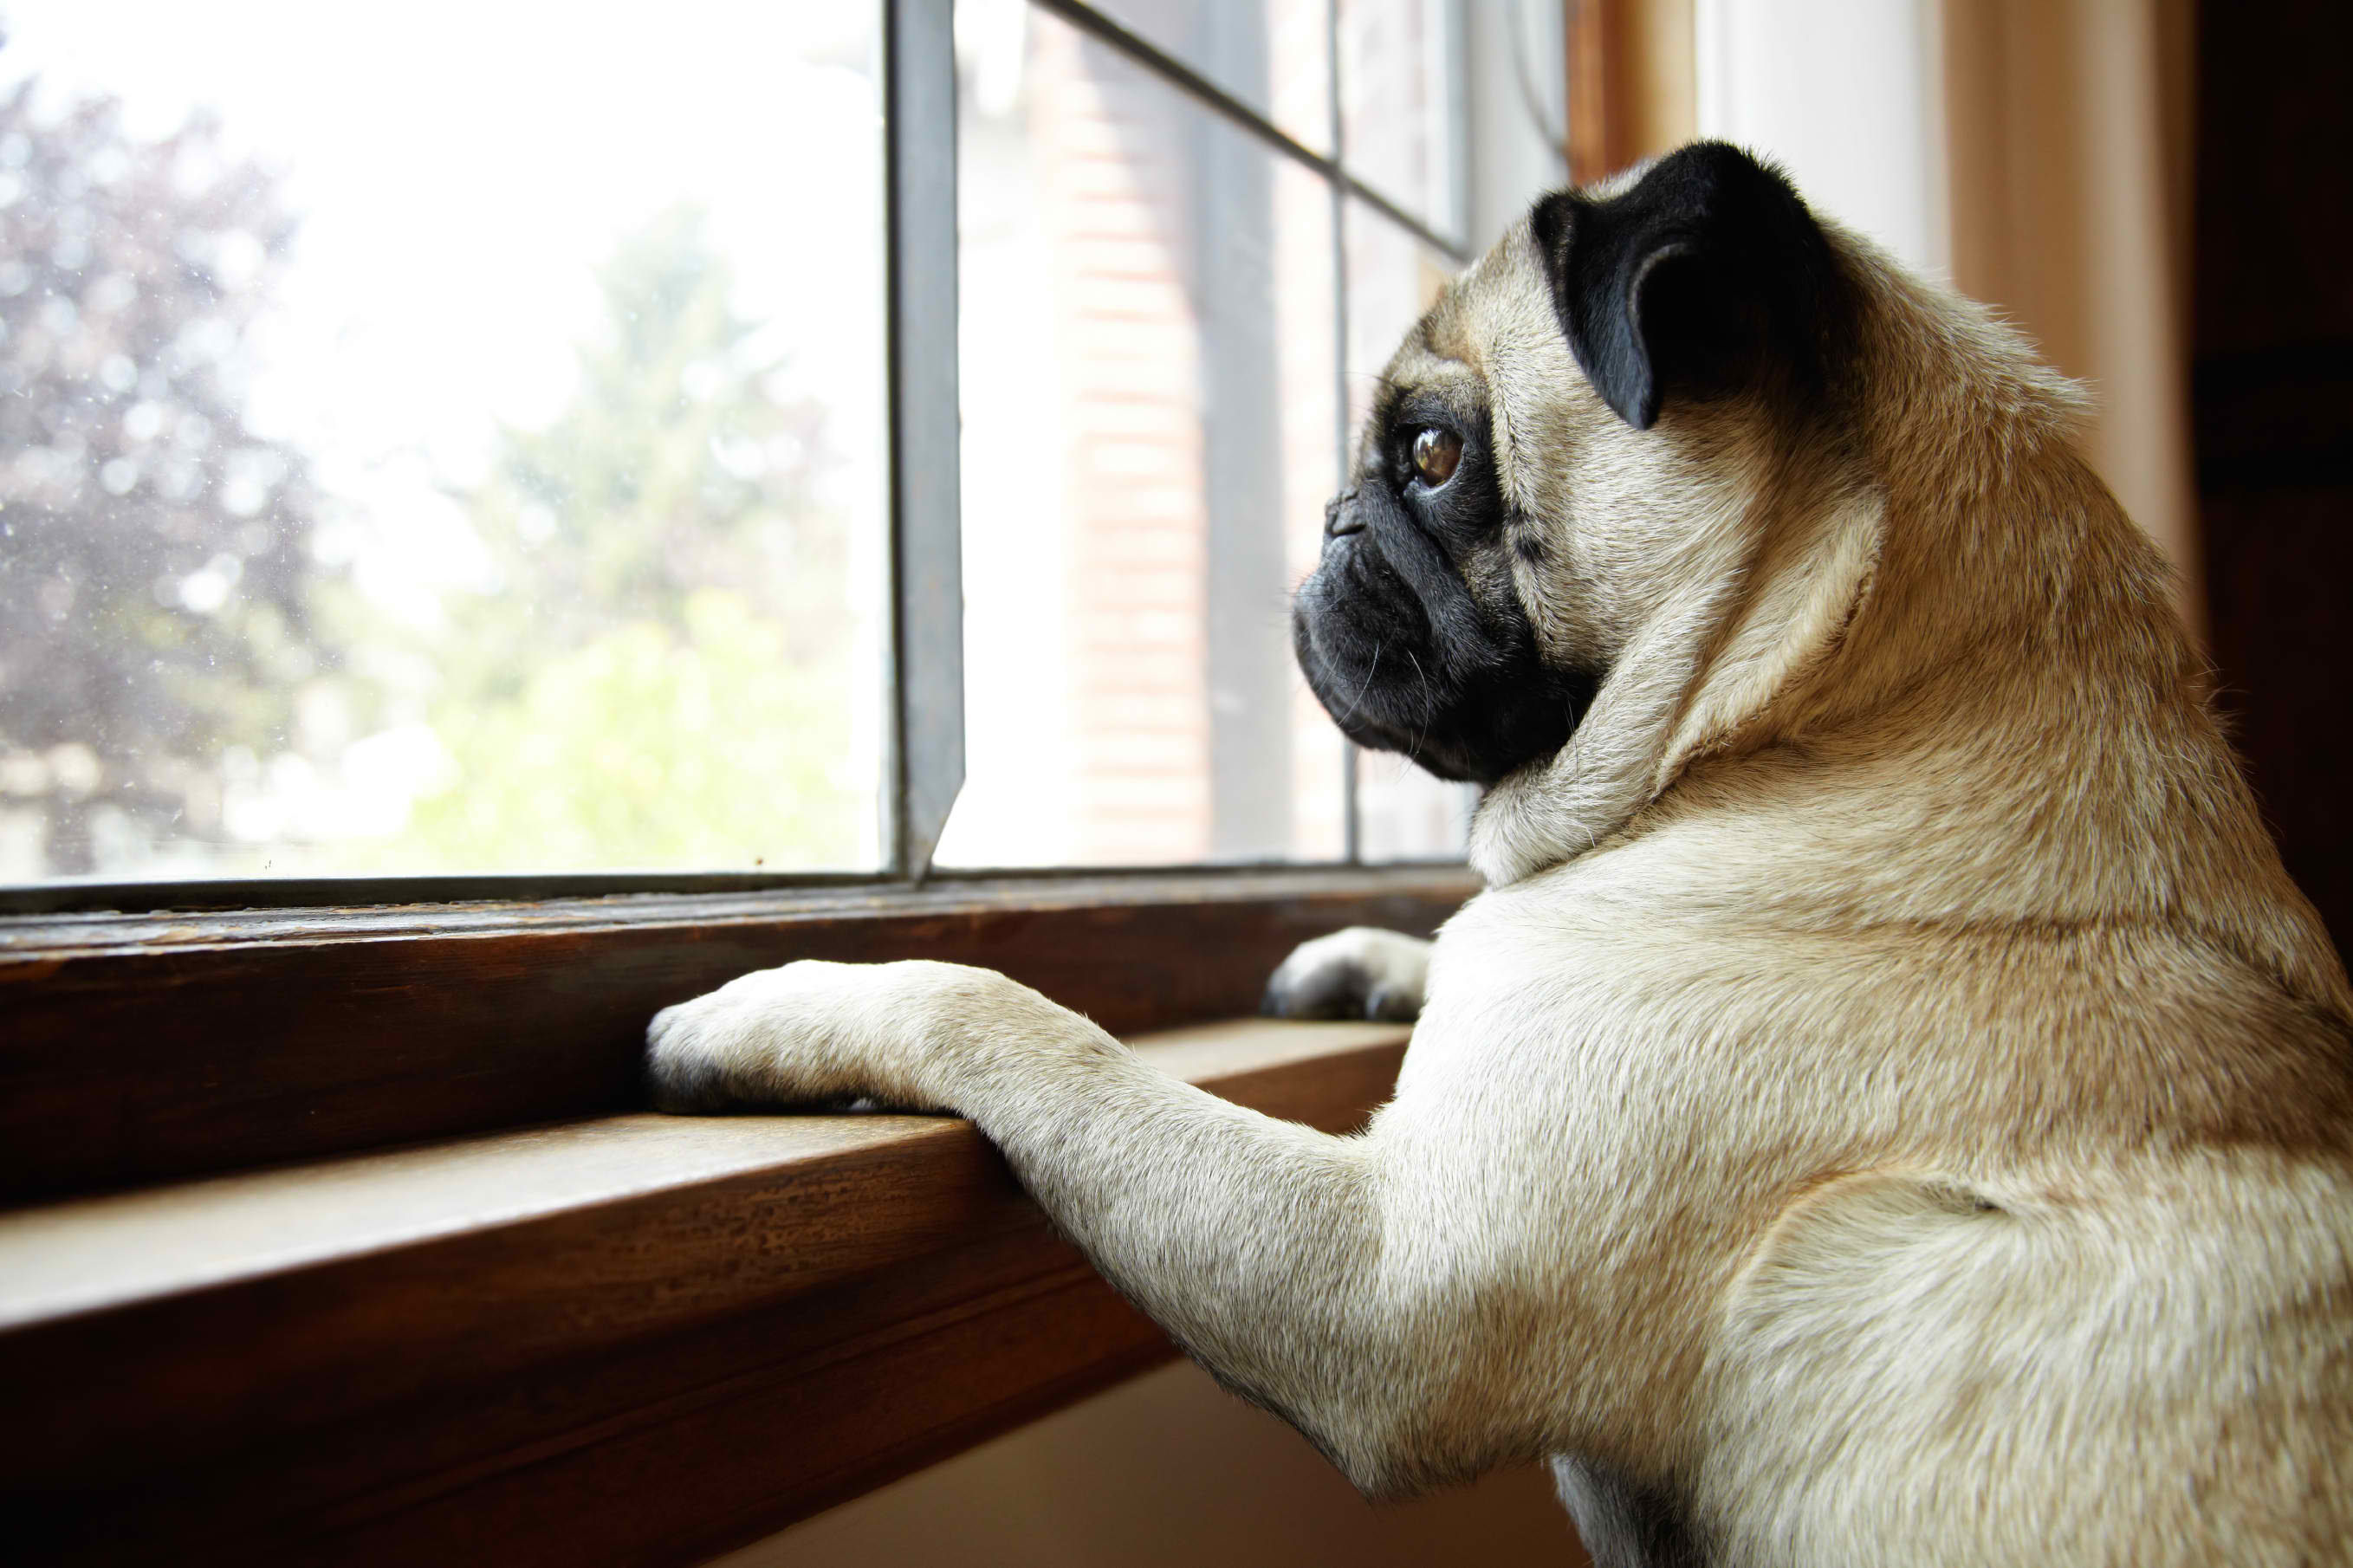 pug waiting for owner at window